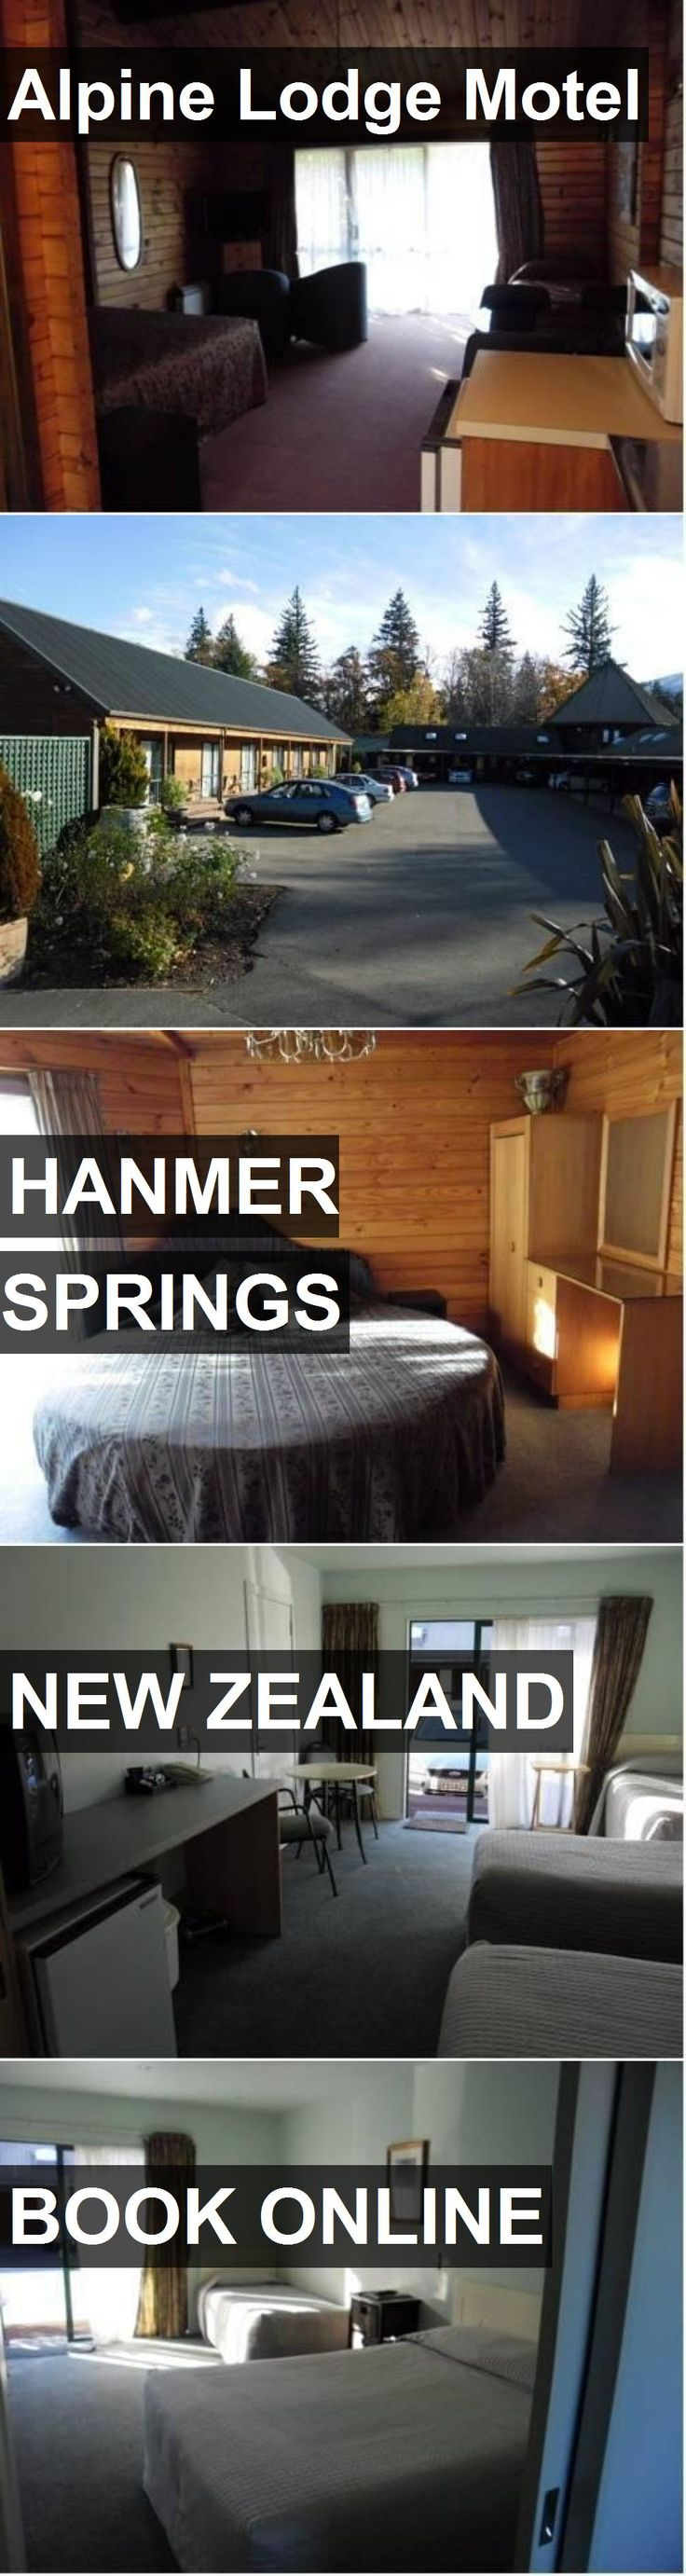 Hotel Alpine Lodge Motel in Hanmer Springs, New Zealand. For more information, photos, reviews and best prices please follow the link. #NewZealand #HanmerSprings #AlpineLodgeMotel #hotel #travel #vacation